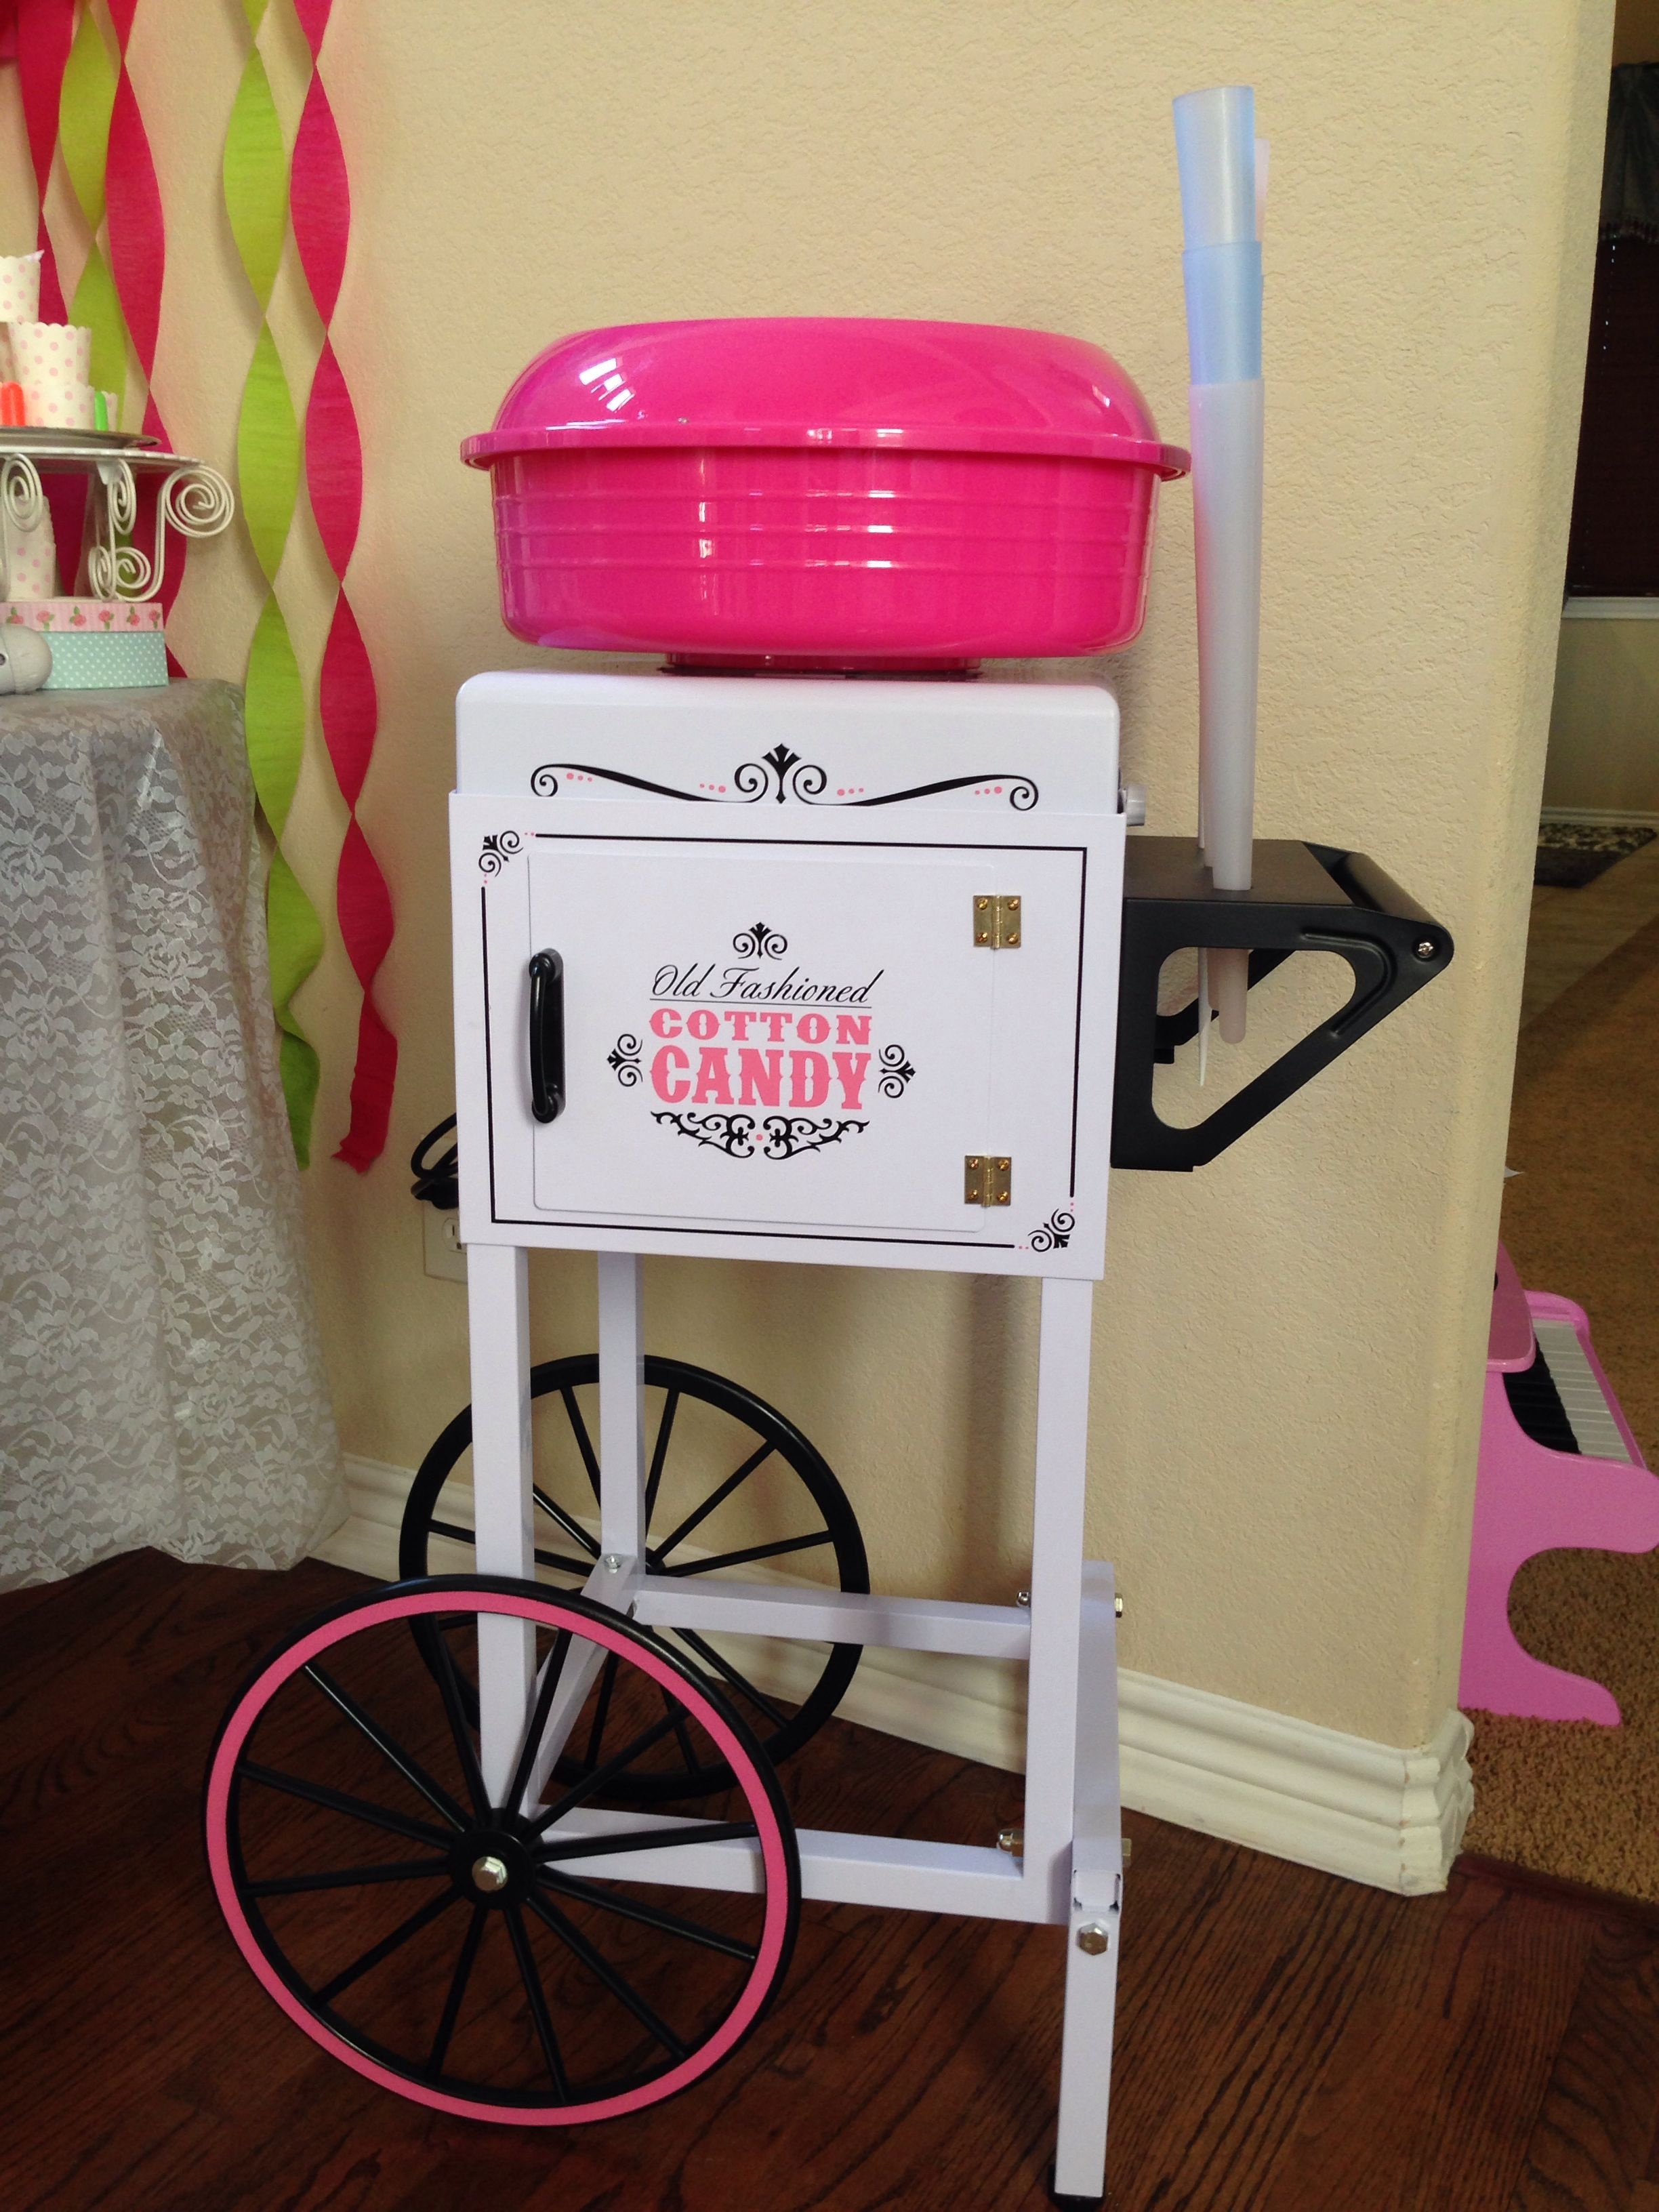 Cotton Candy Machine Purchased At Big Lots